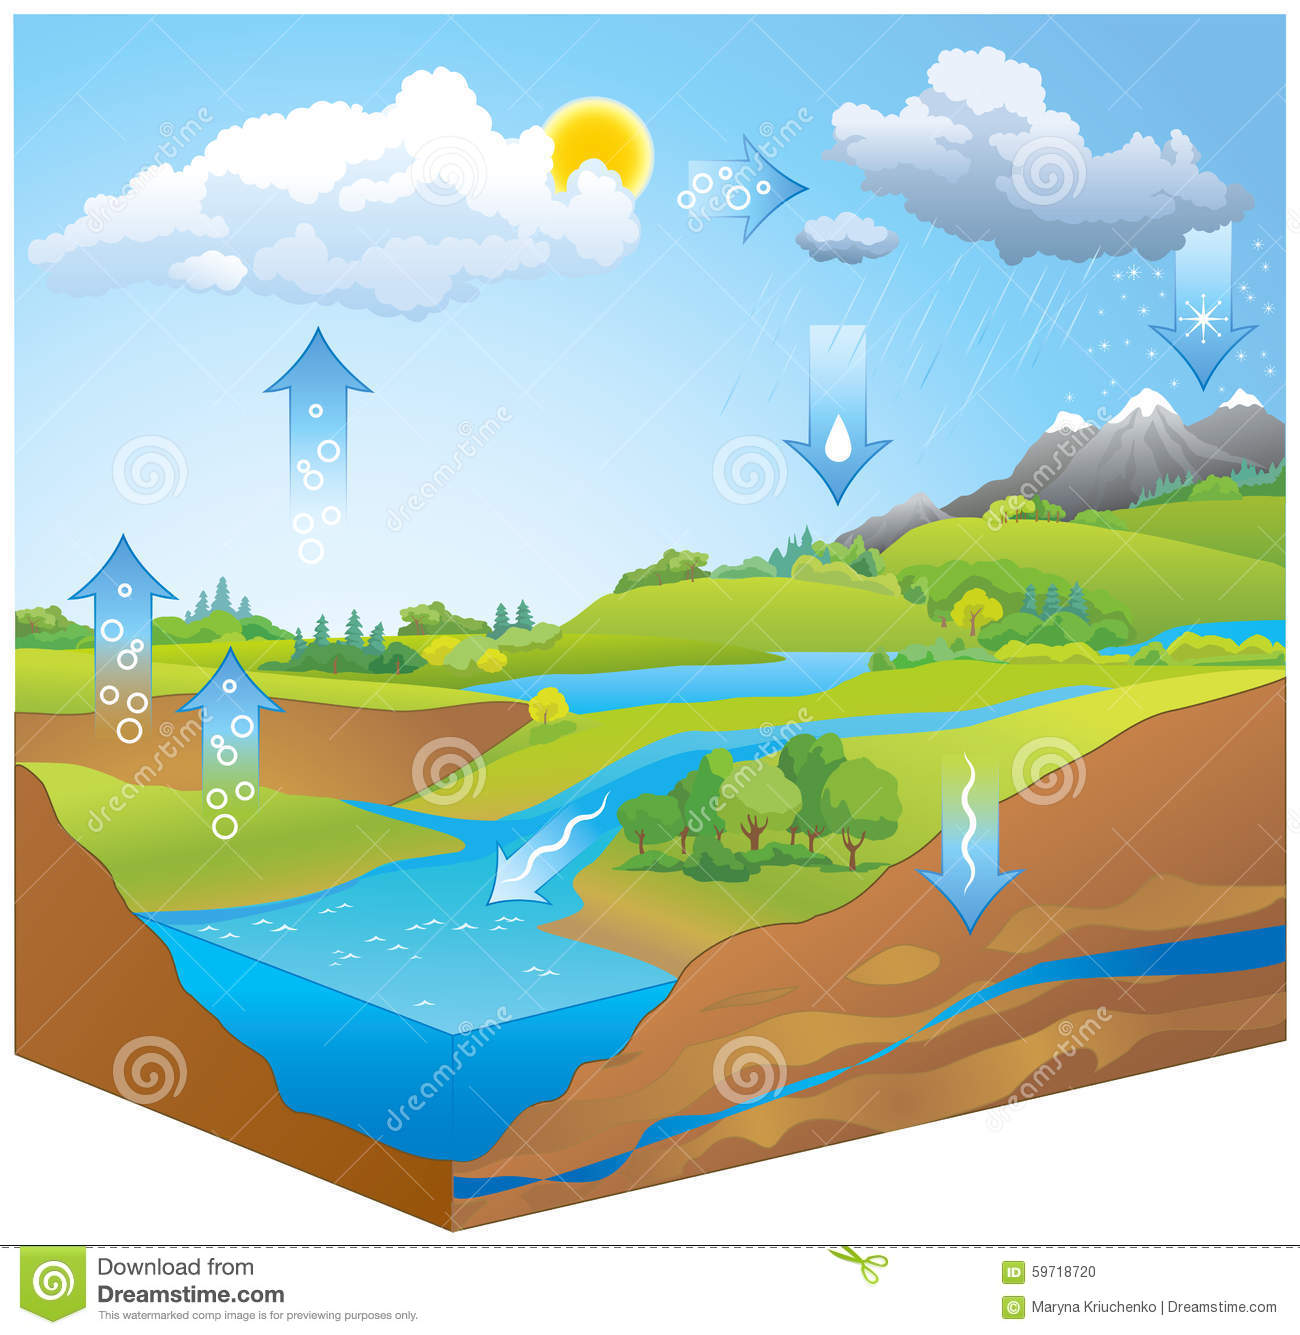 Water cycle clipart frame picture freeuse download H2o Stock Illustrations – 1,199 H2o Stock Illustrations, Vectors ... picture freeuse download